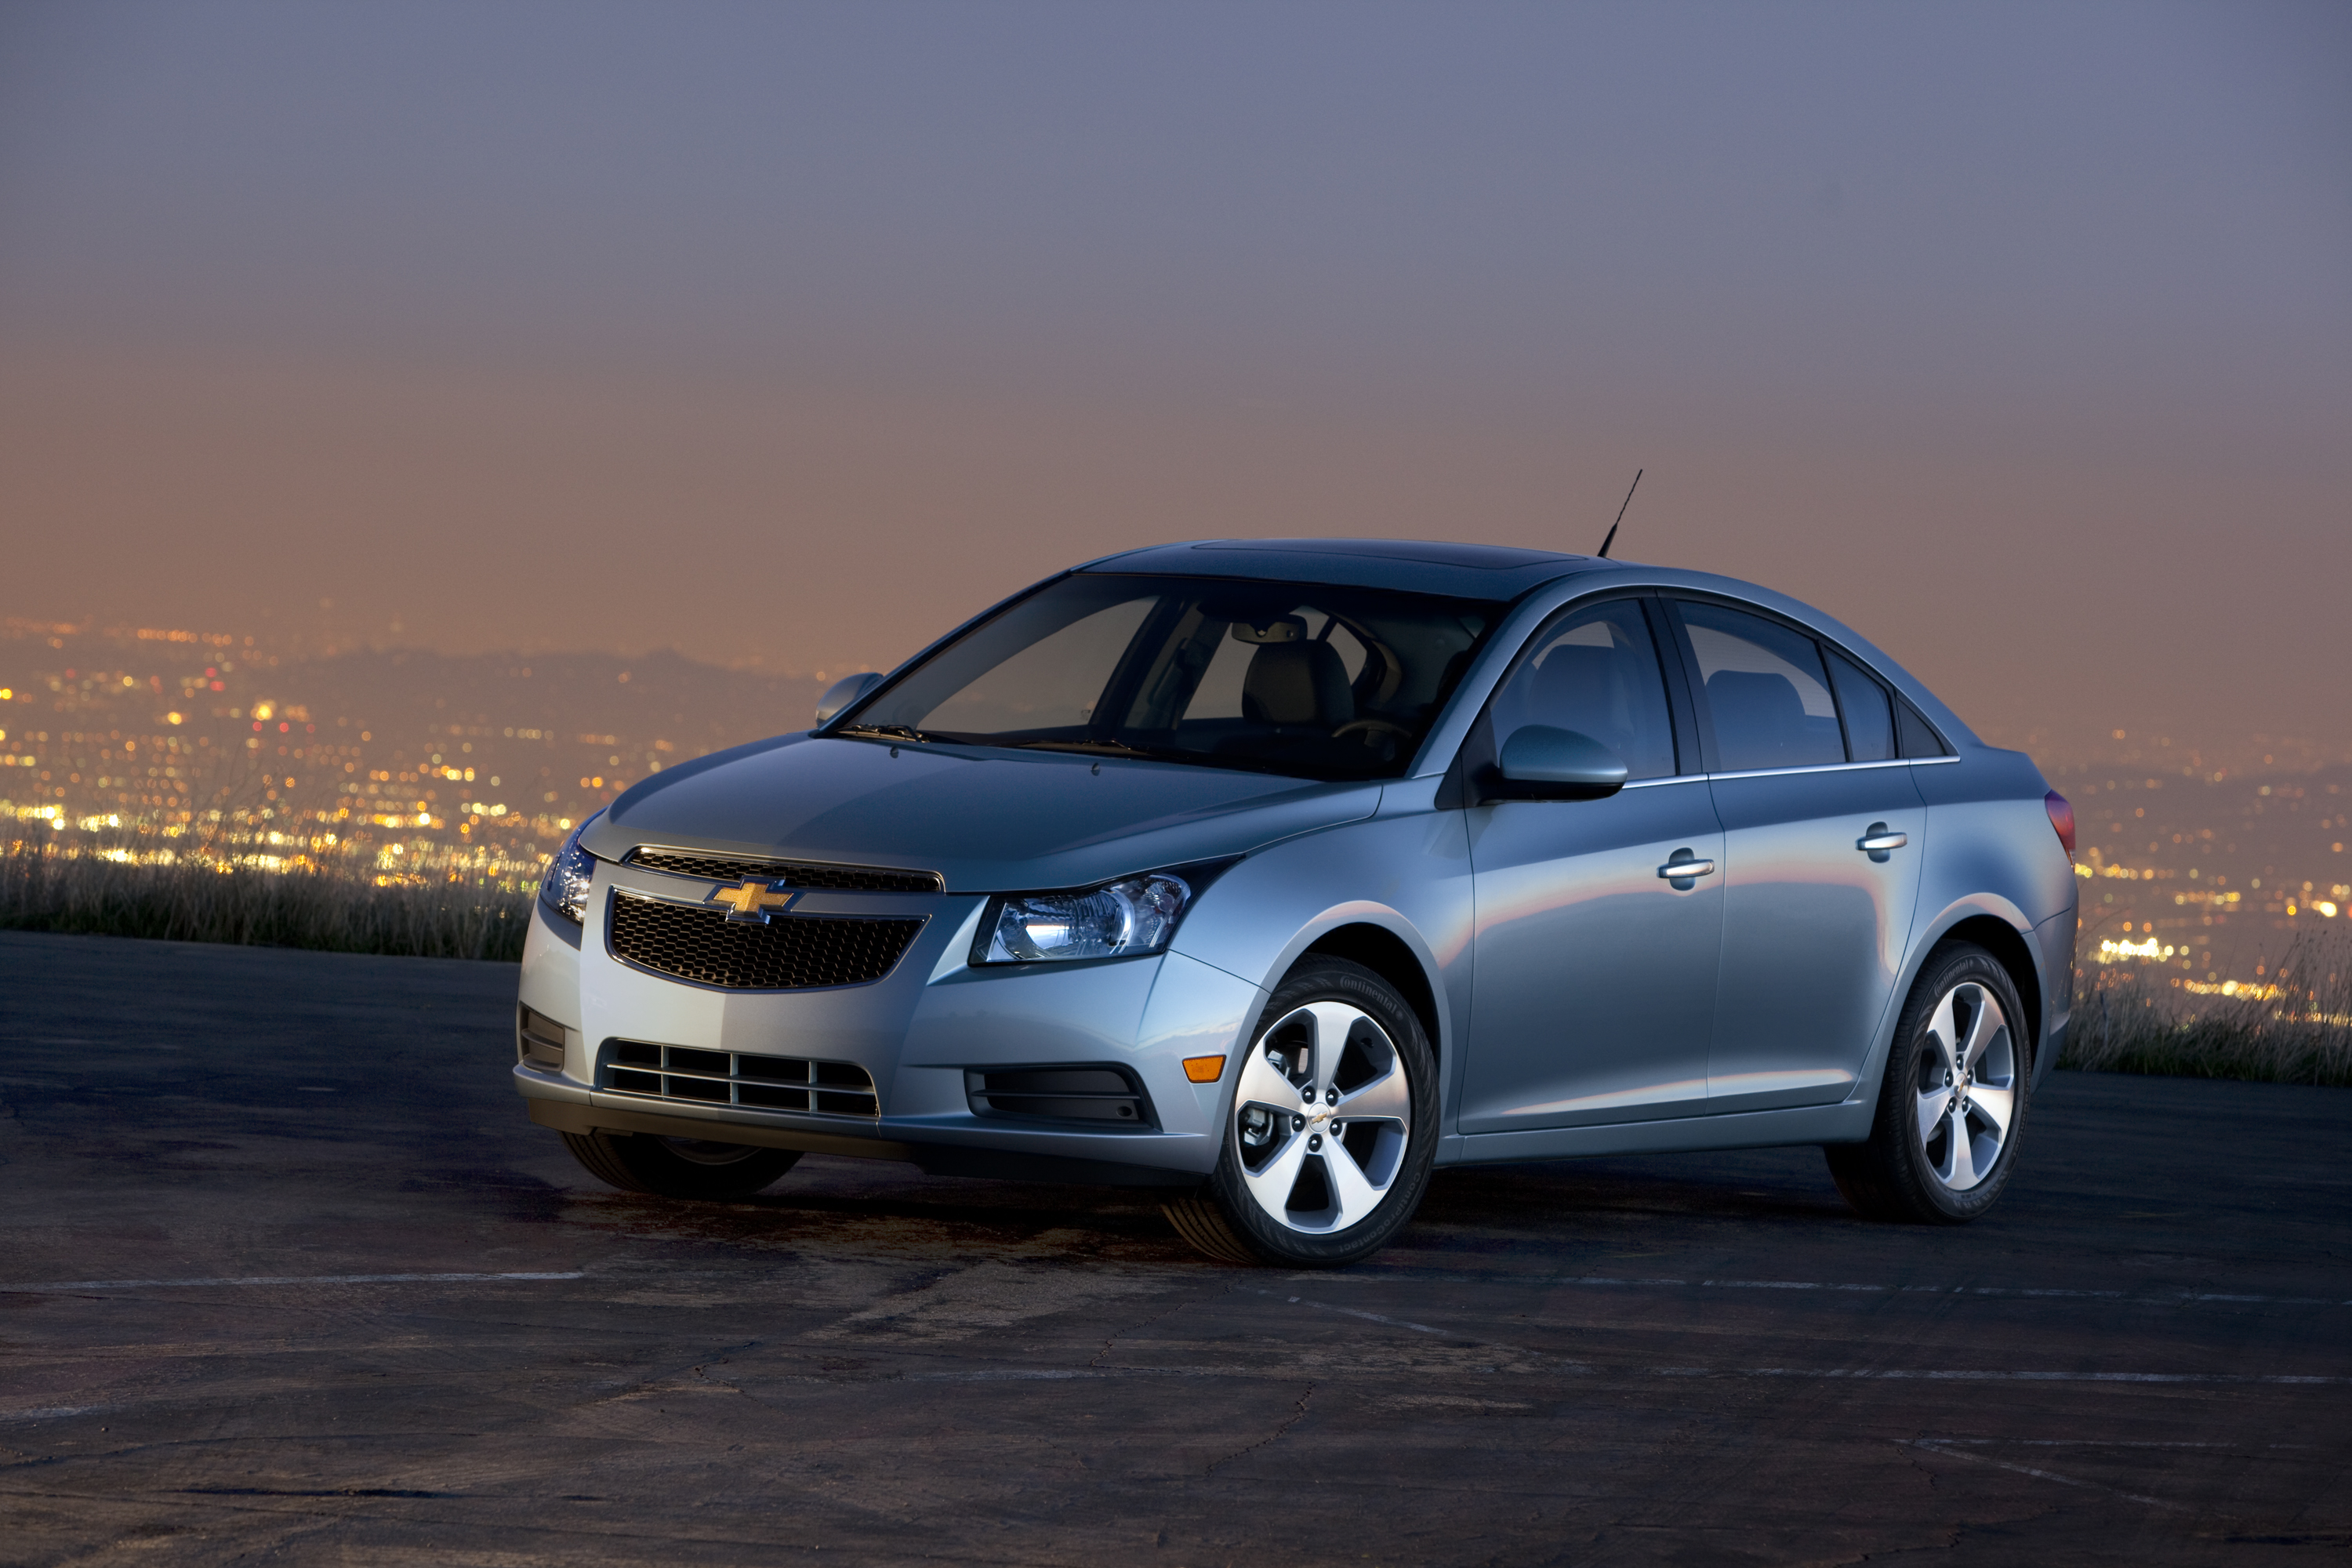 2011 chevrolet cruze chevy review ratings specs prices and photos the car connection. Black Bedroom Furniture Sets. Home Design Ideas